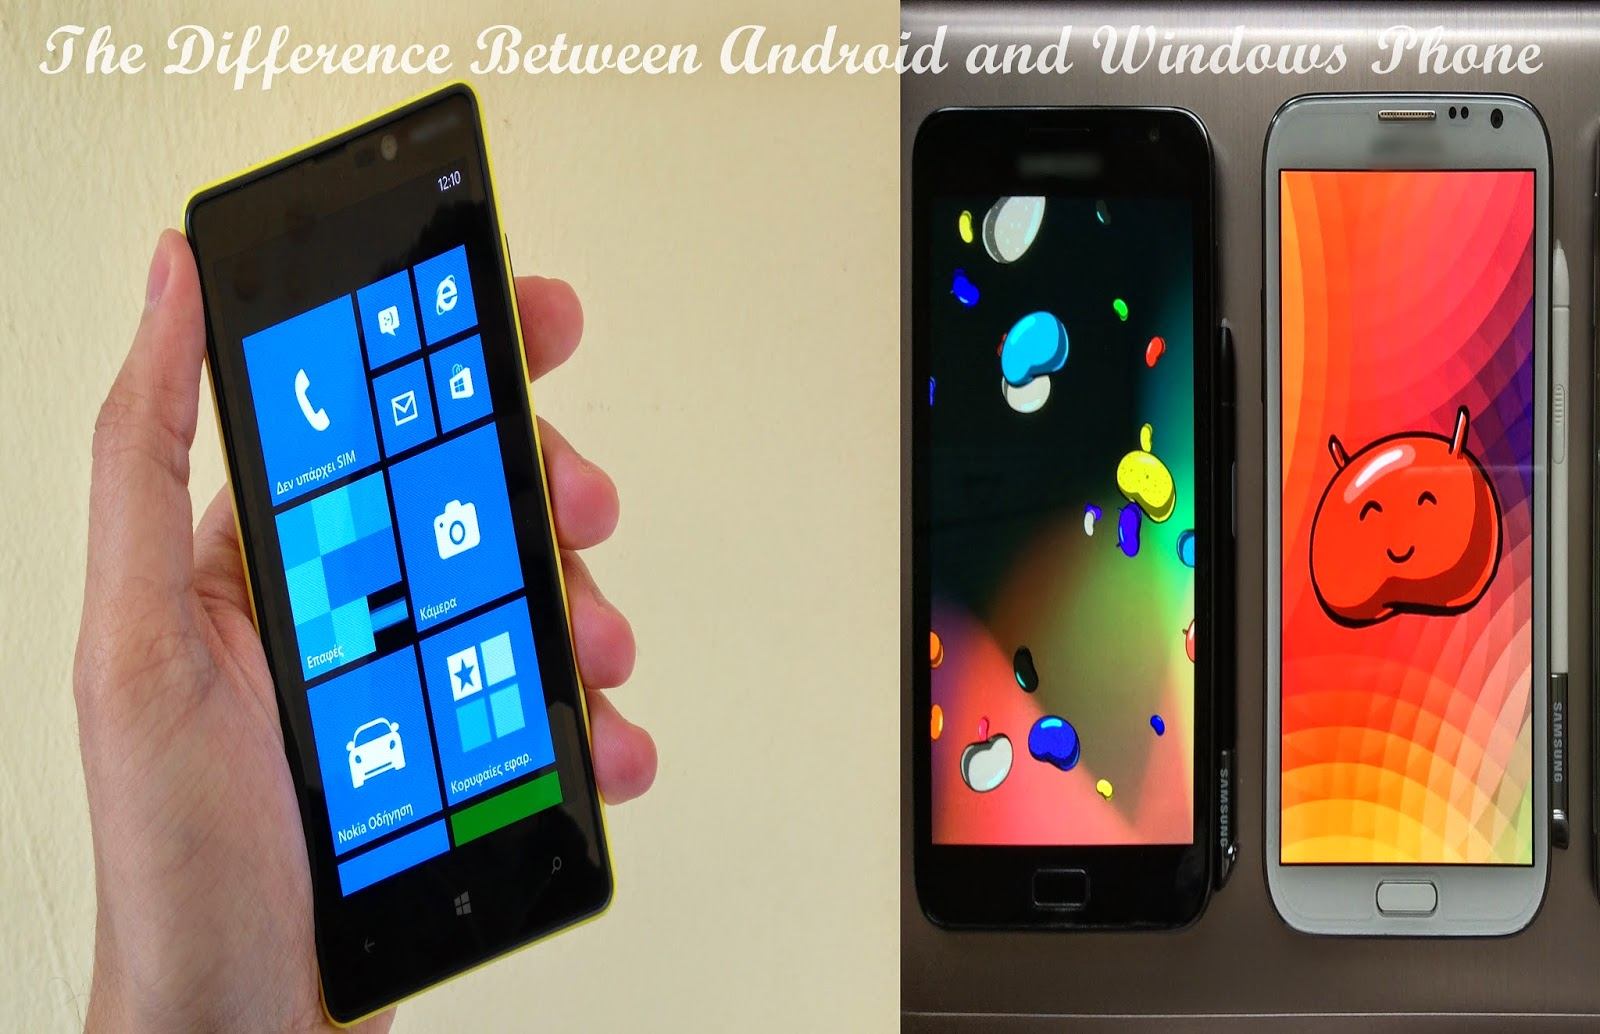 The Difference Between Android and Windows Phone